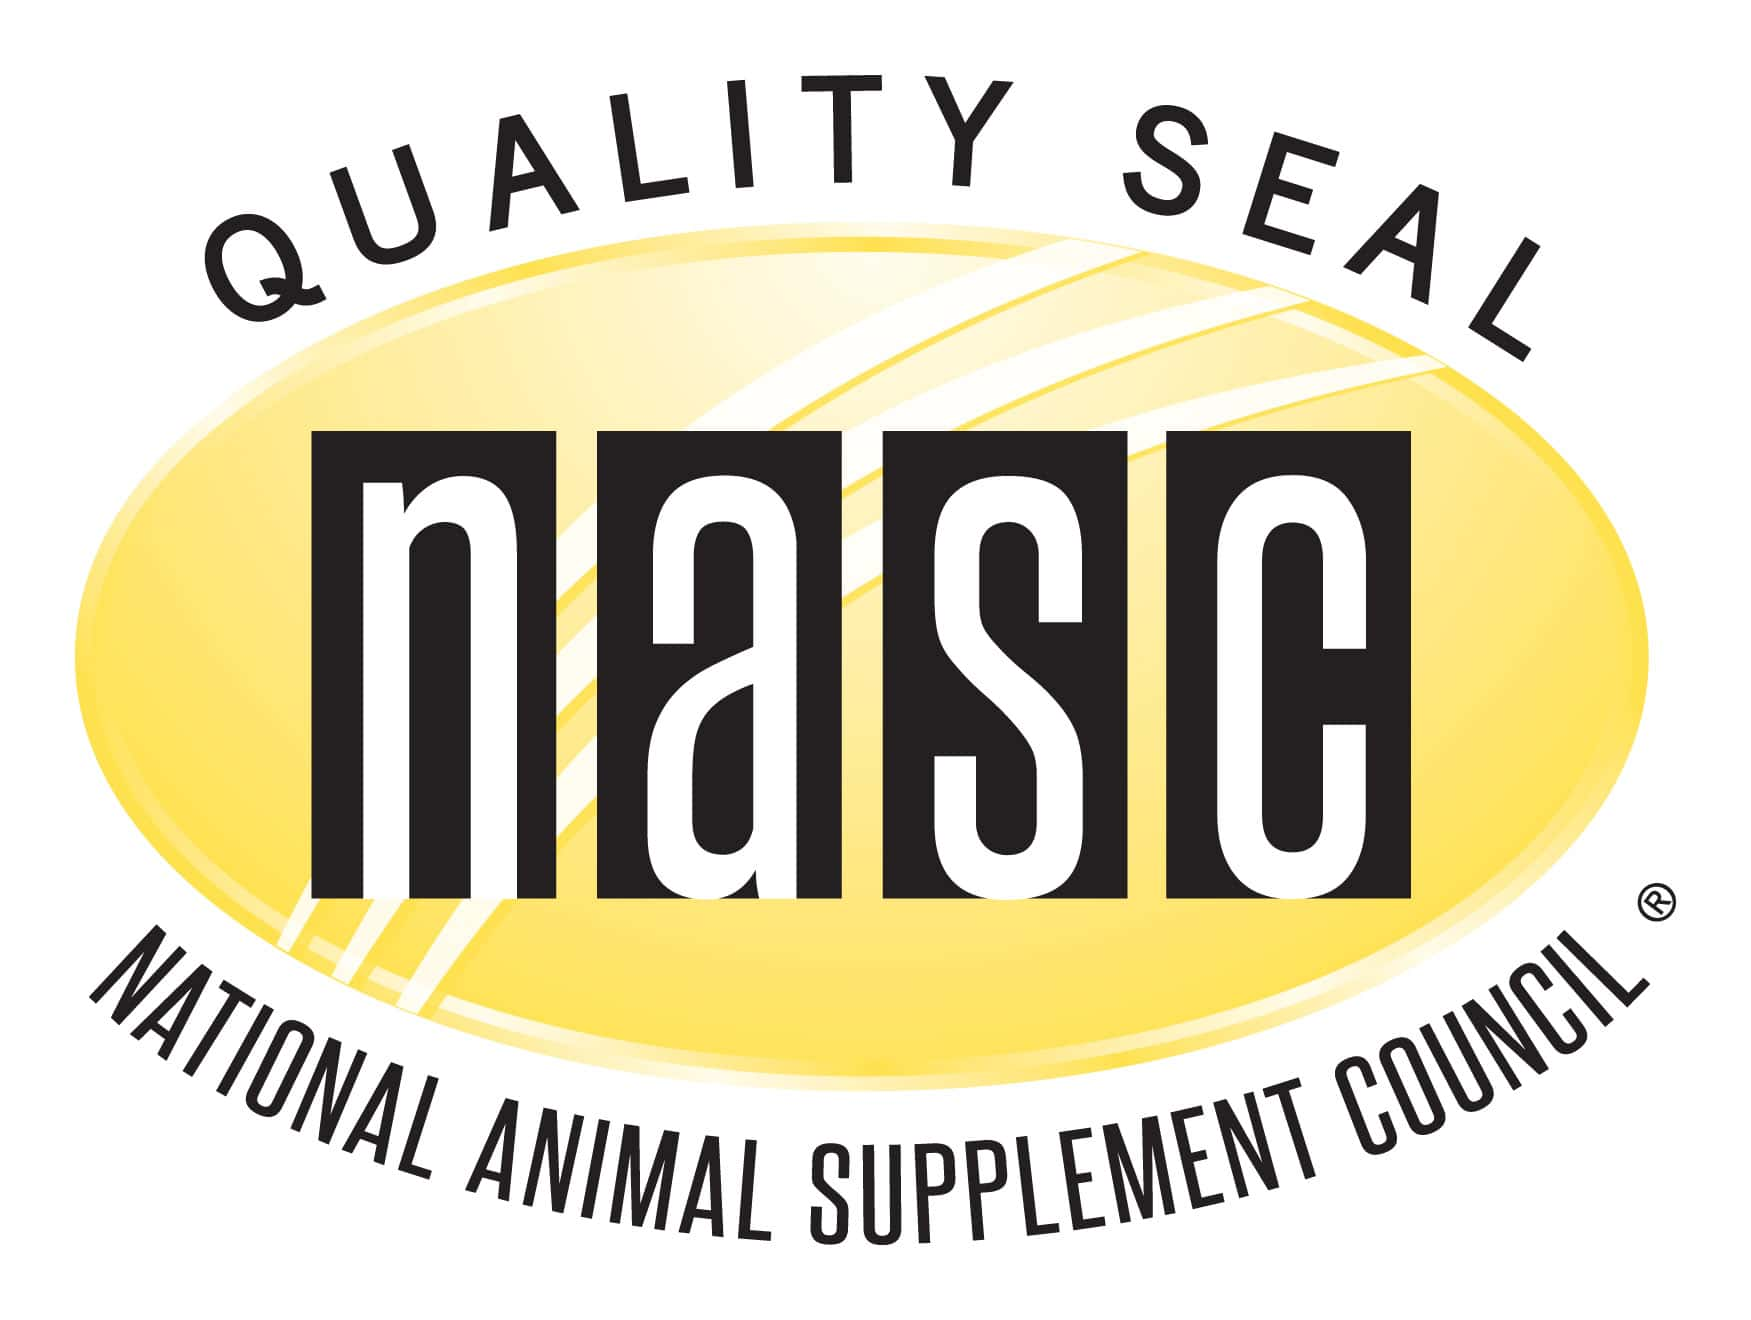 National Animal Supplement Council Quality Seal logo